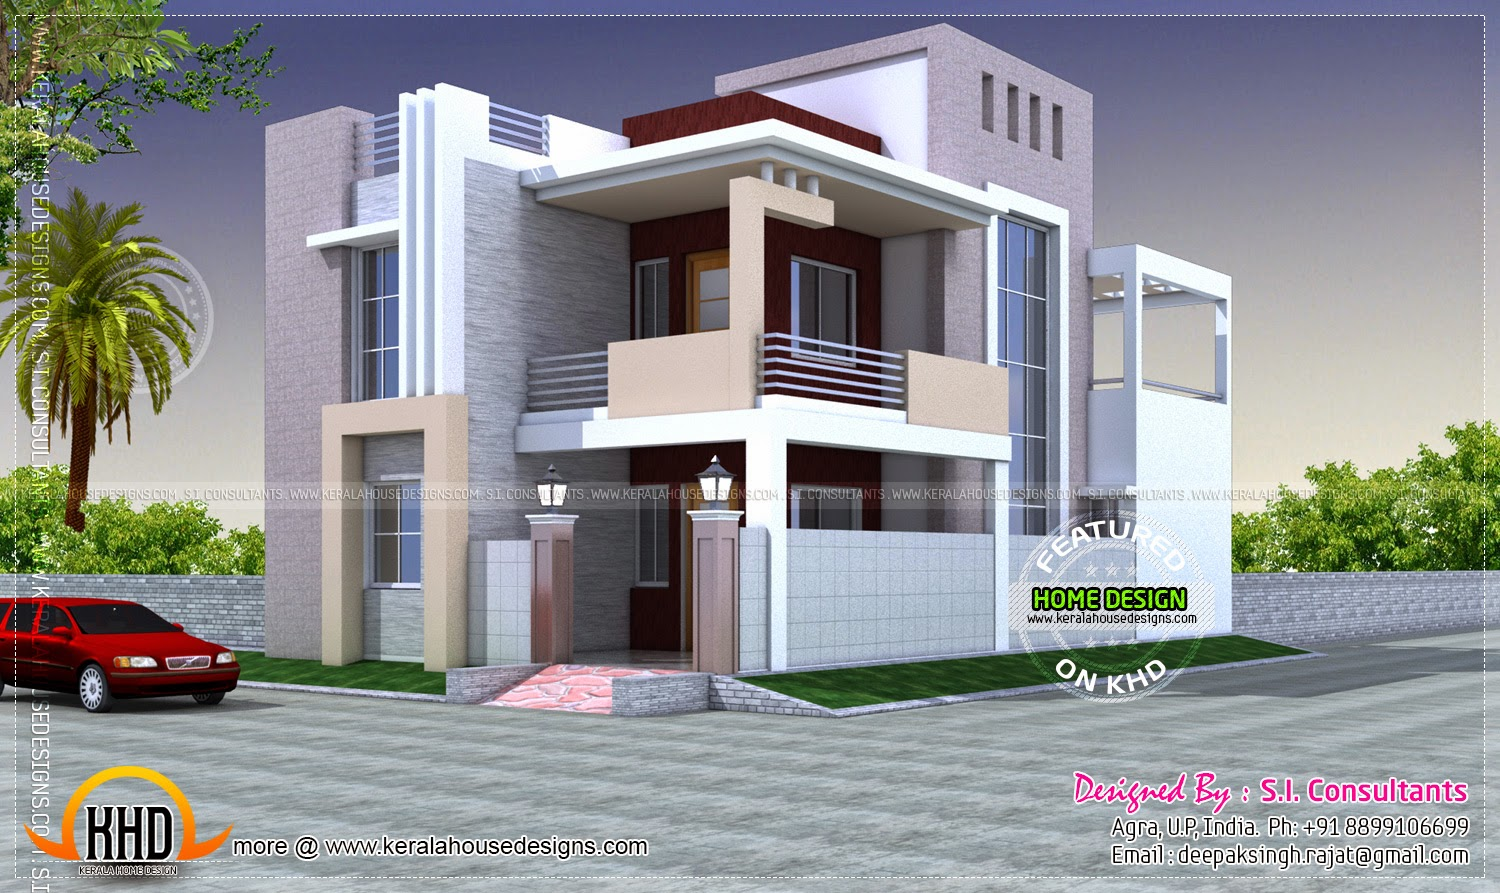 House exterior elevation modern style kerala home design for Exterior design of small houses